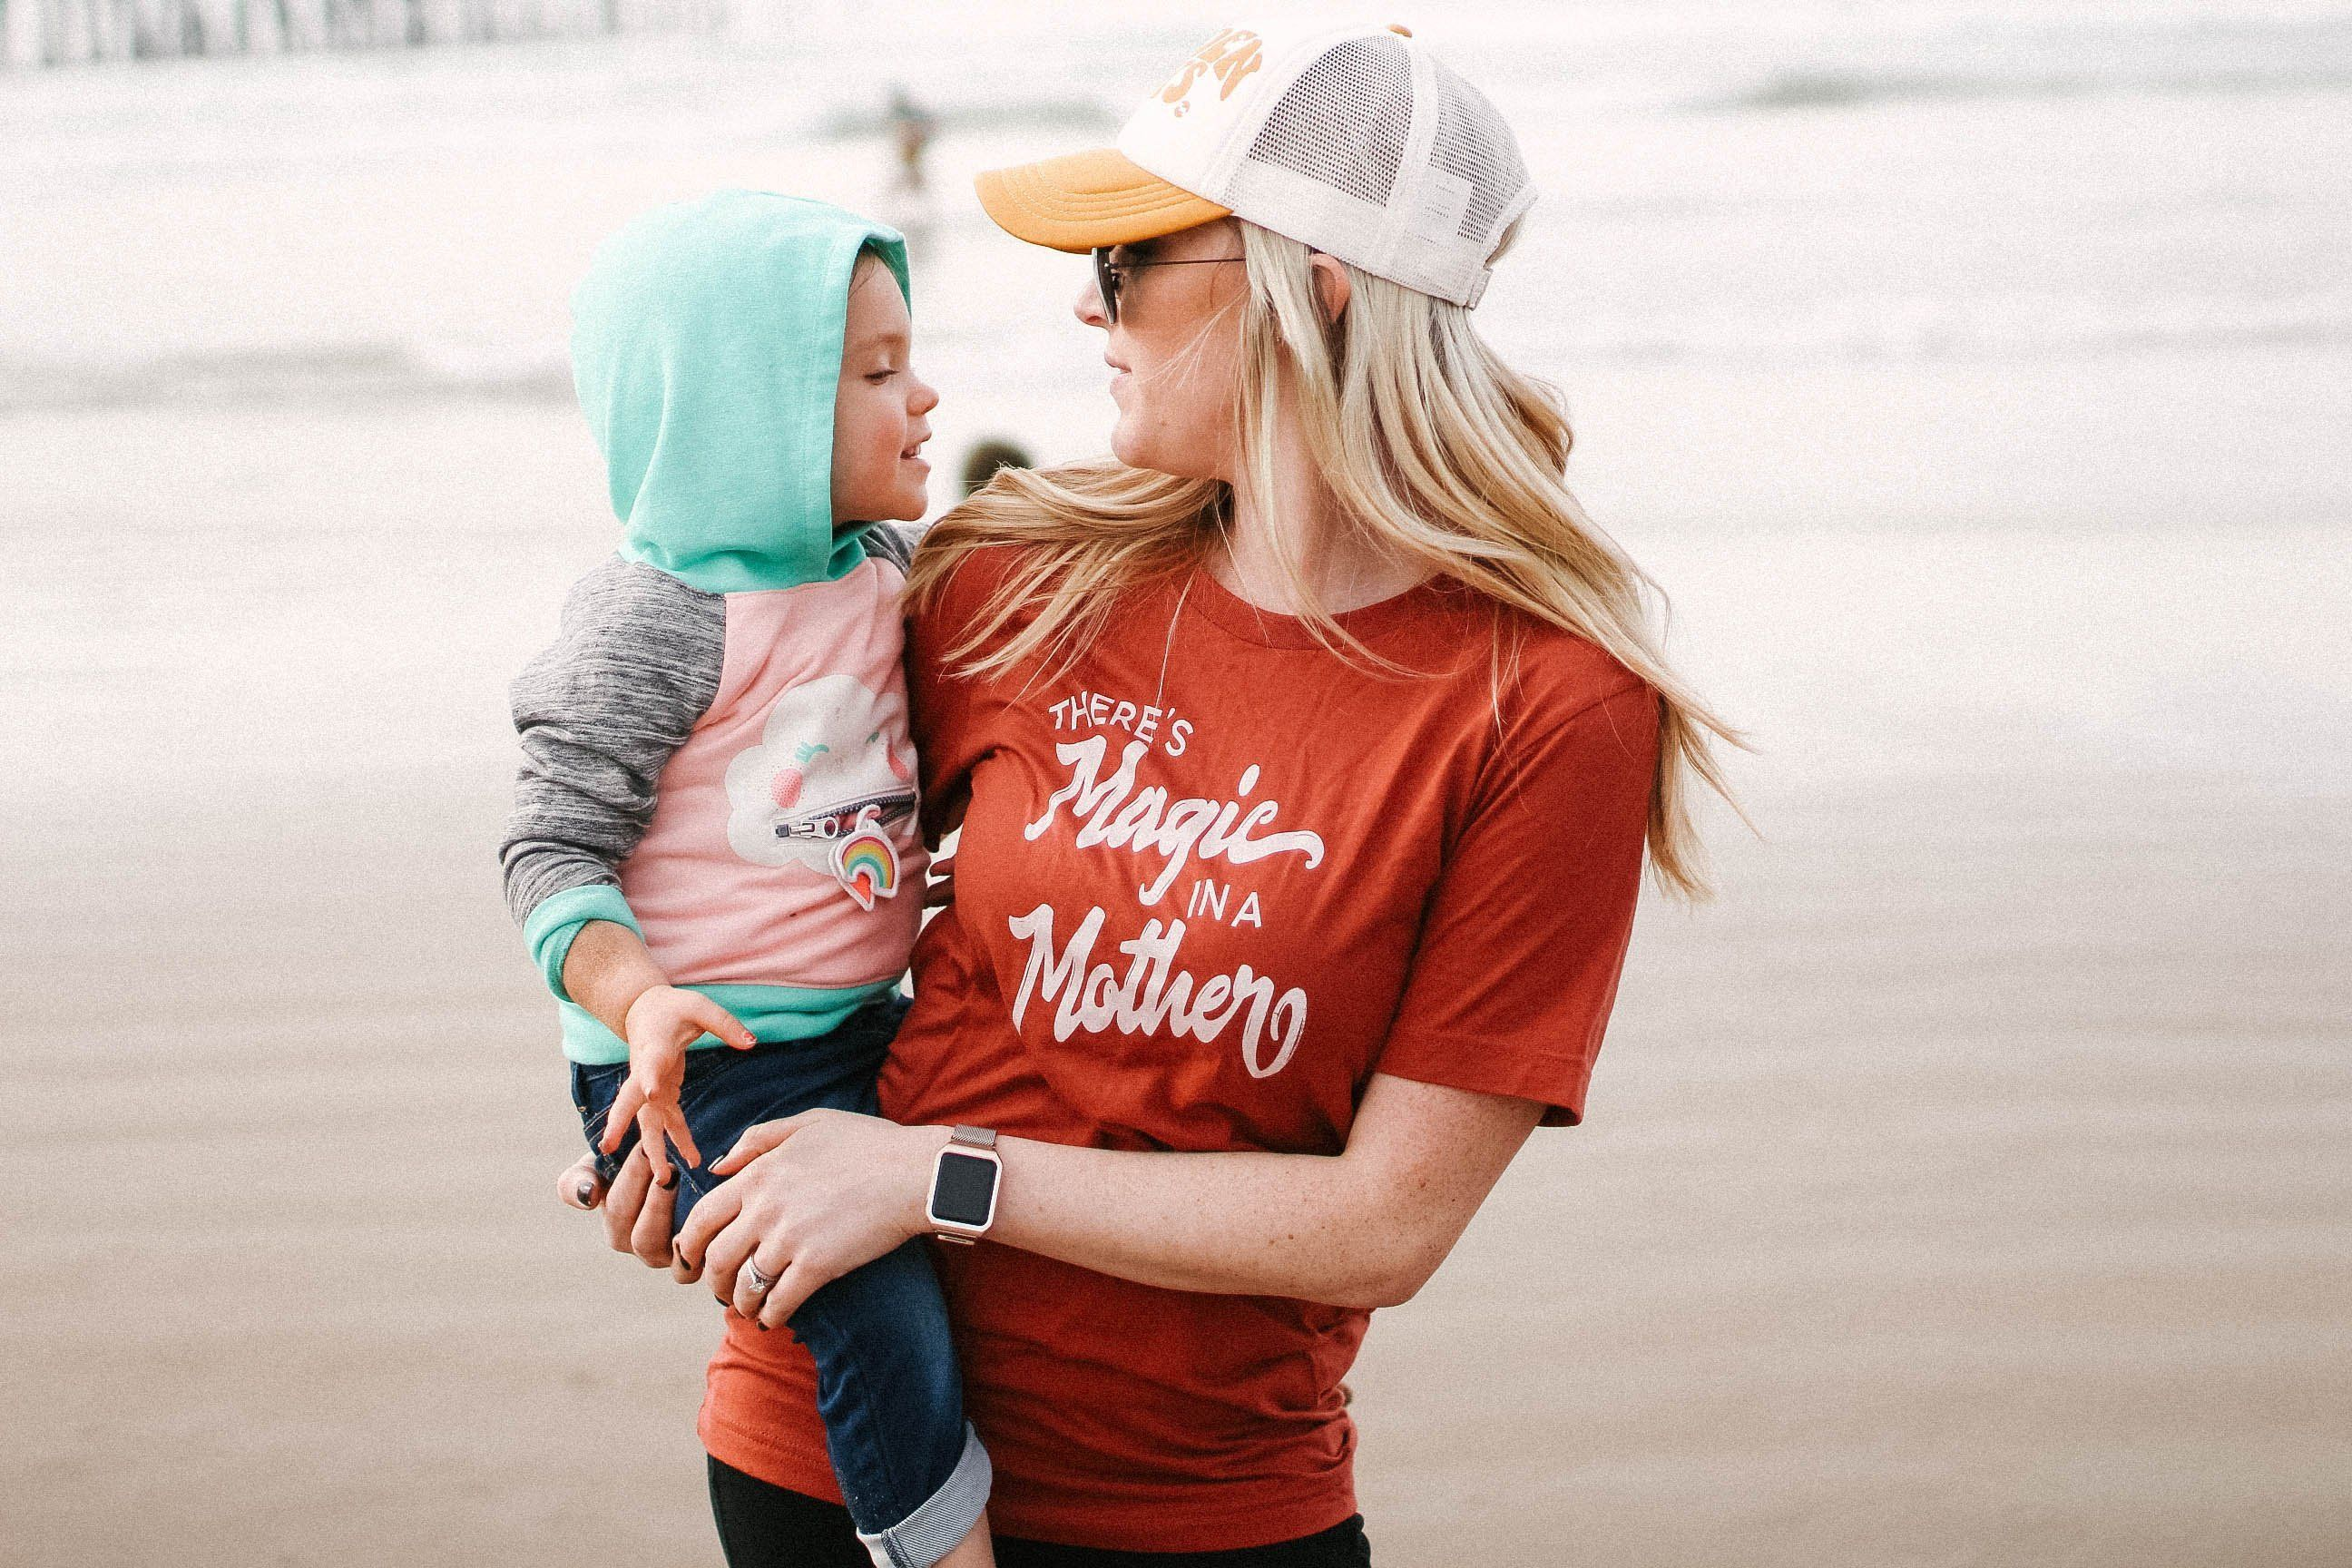 fecb26d2fe8826 There s magic in a mother tshirt  momlife  motherhood